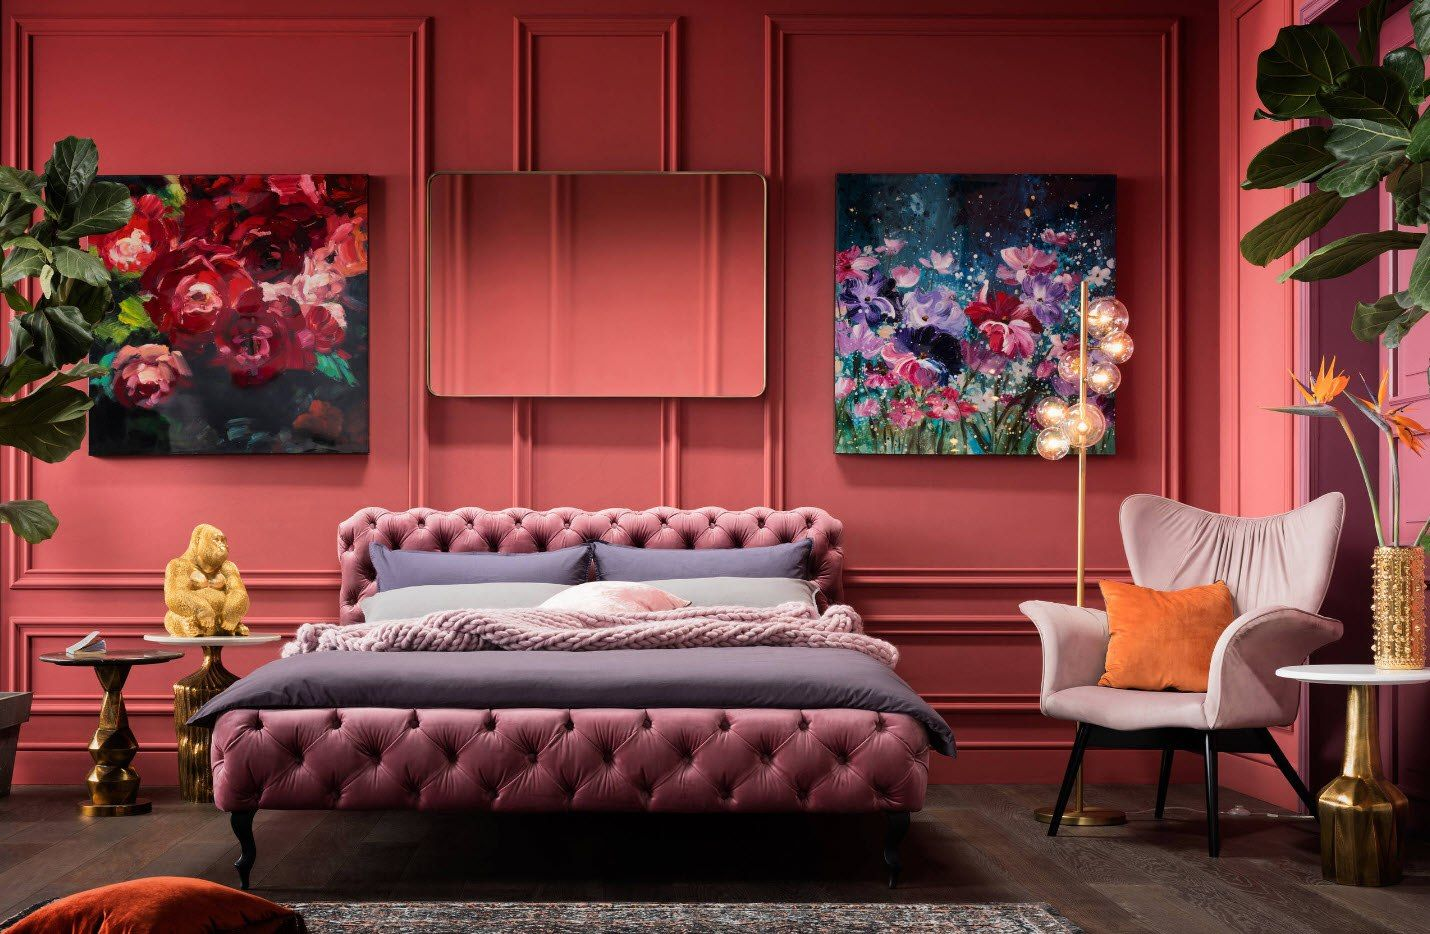 180 Square Feet Bedroom Interior Design Ideas. Futuristic unbeatable red bedroom with quilted royal bed